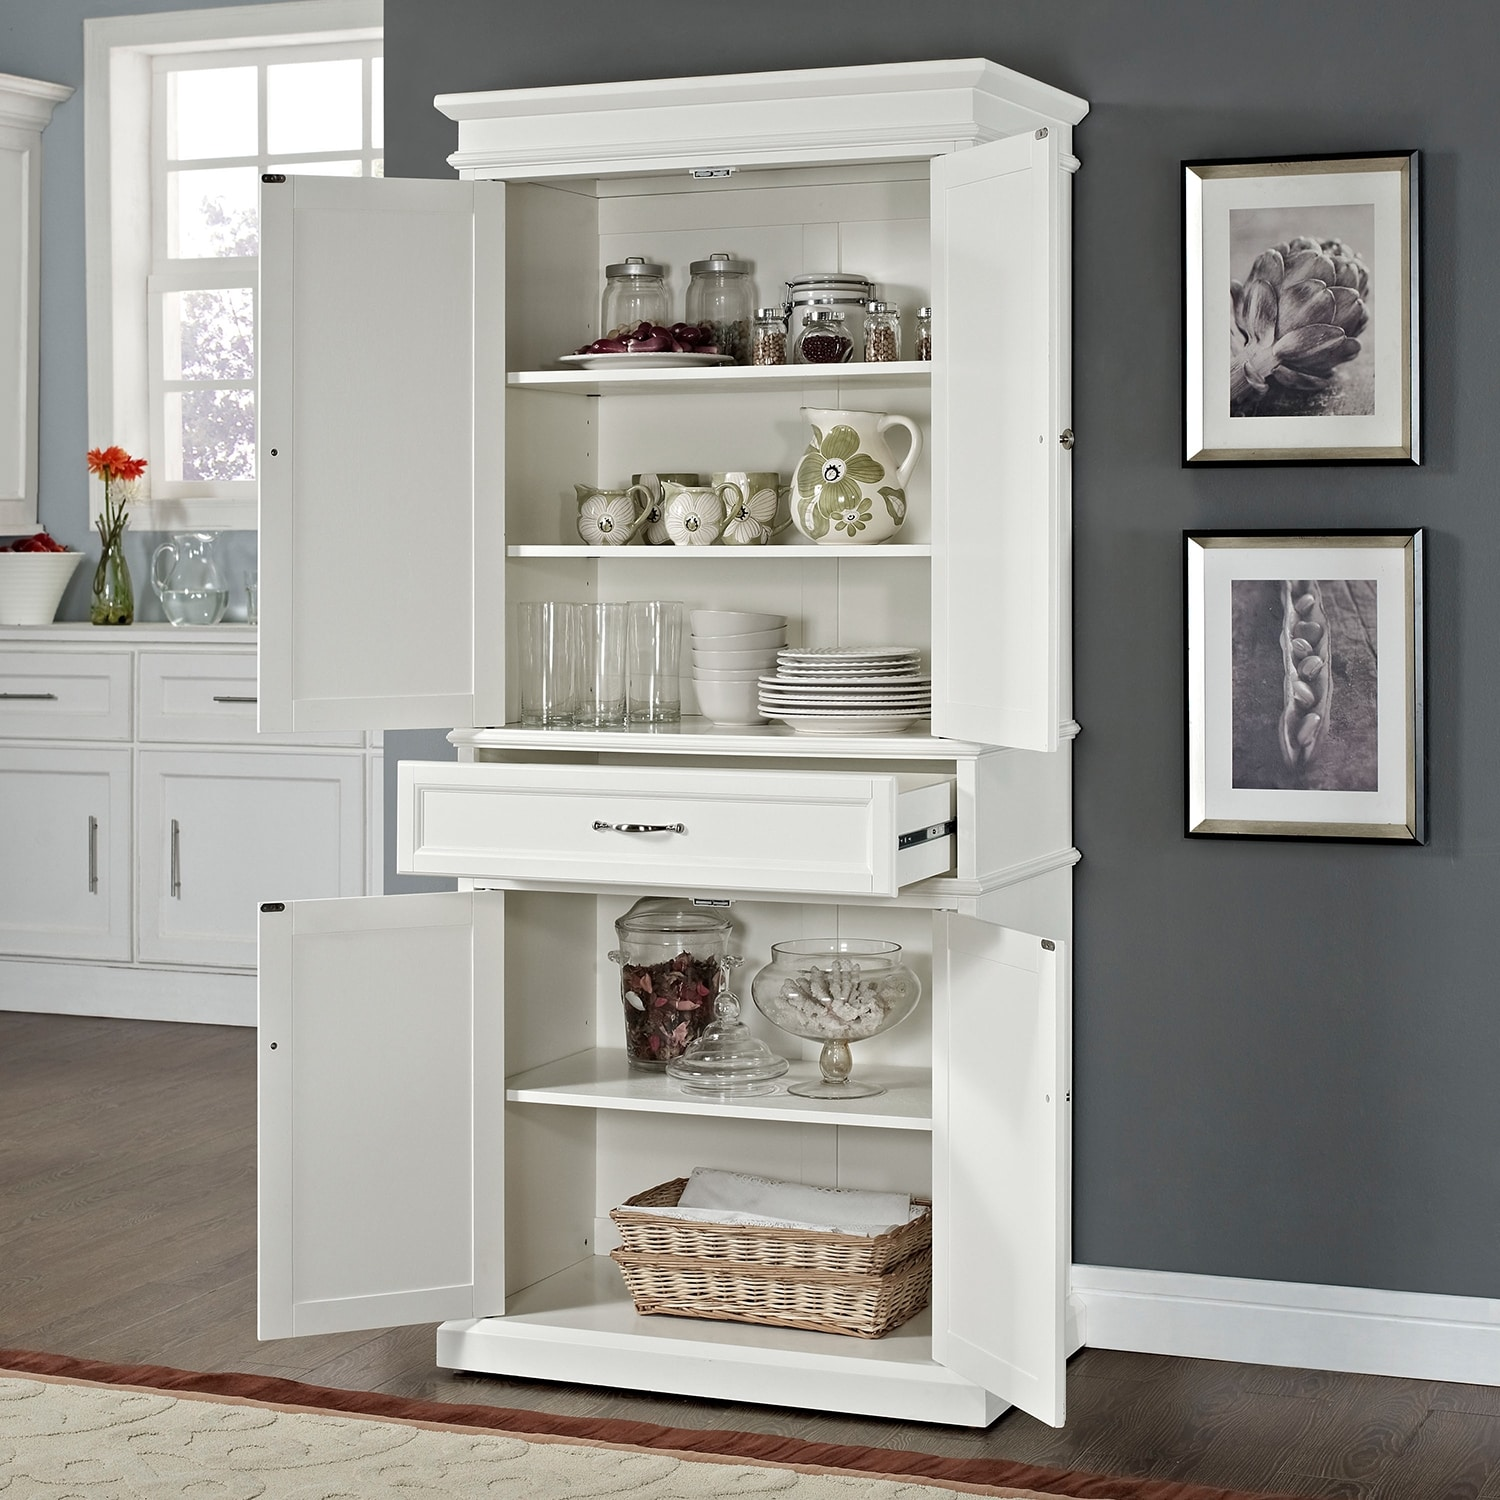 Midway Pantry White Value City Furniture